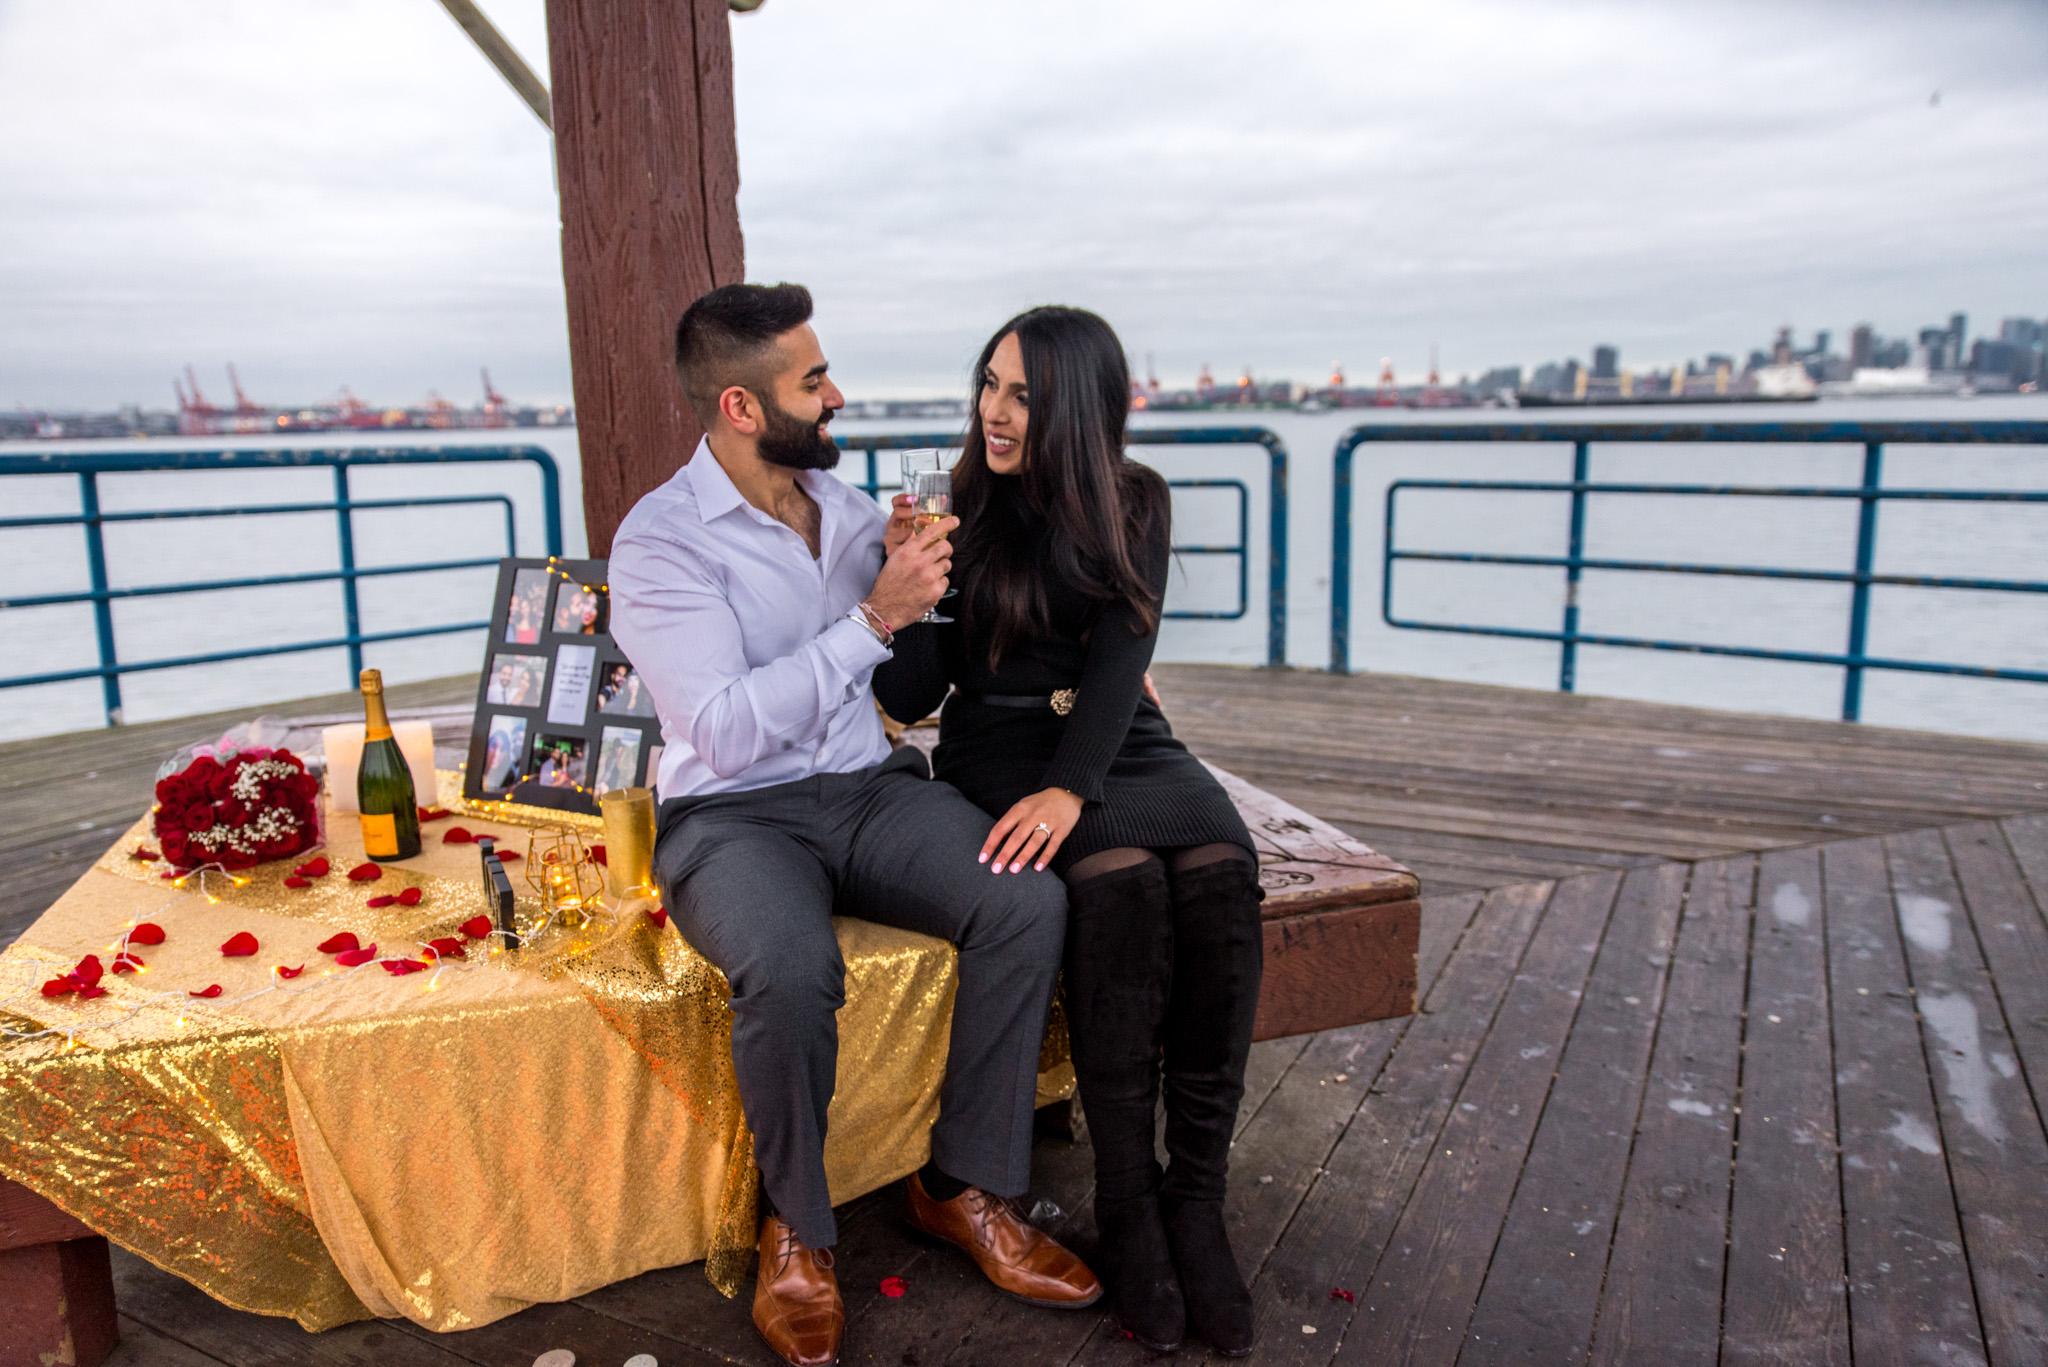 Lonsdale Quay Proposal Photographer-62.JPG